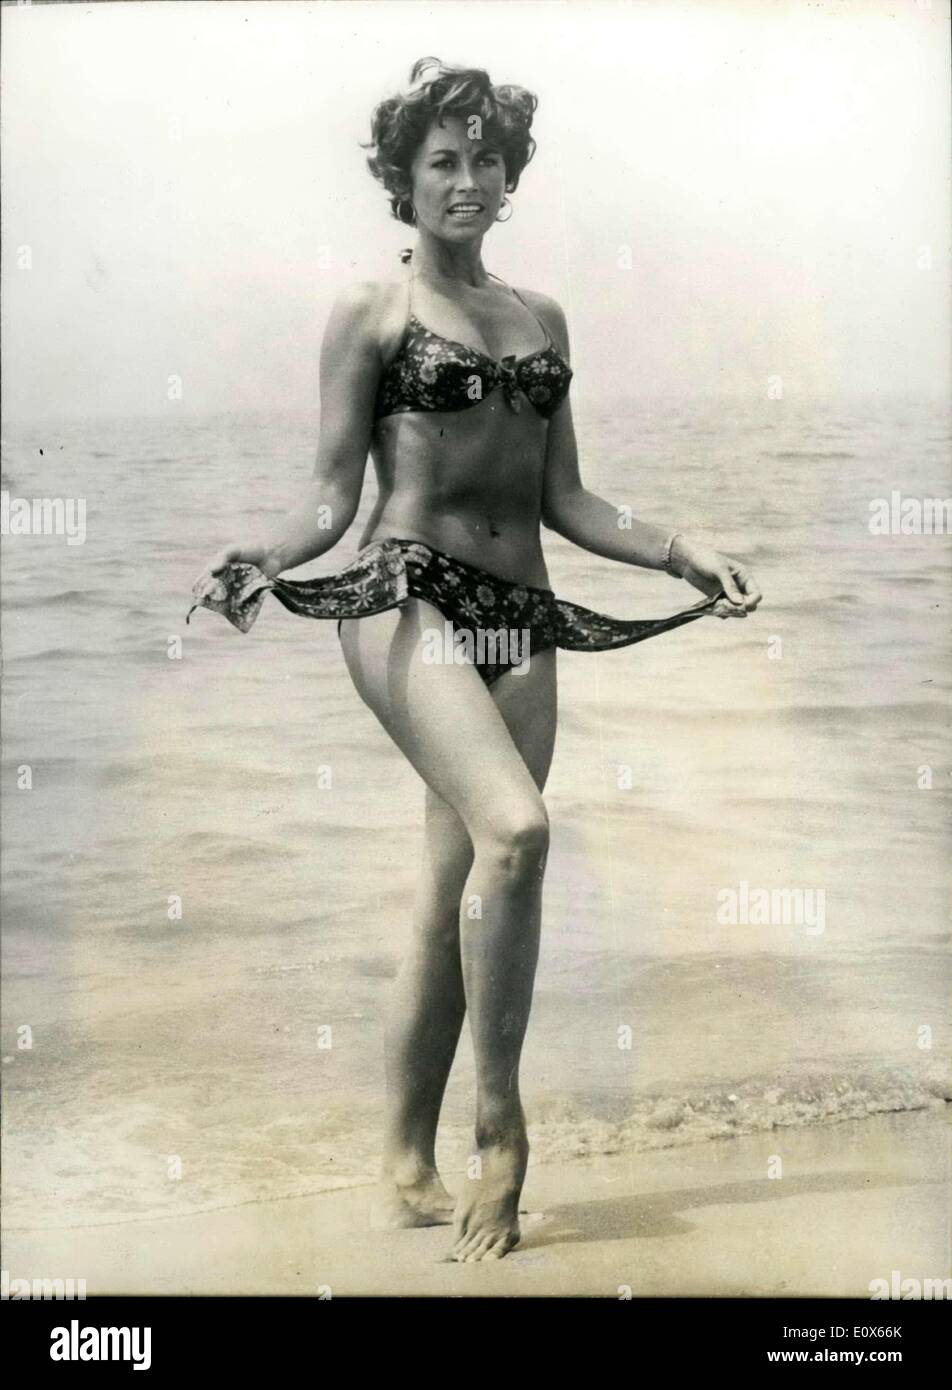 18, 1965 - Bikini - clad Mirelle takes a cooler in the sea